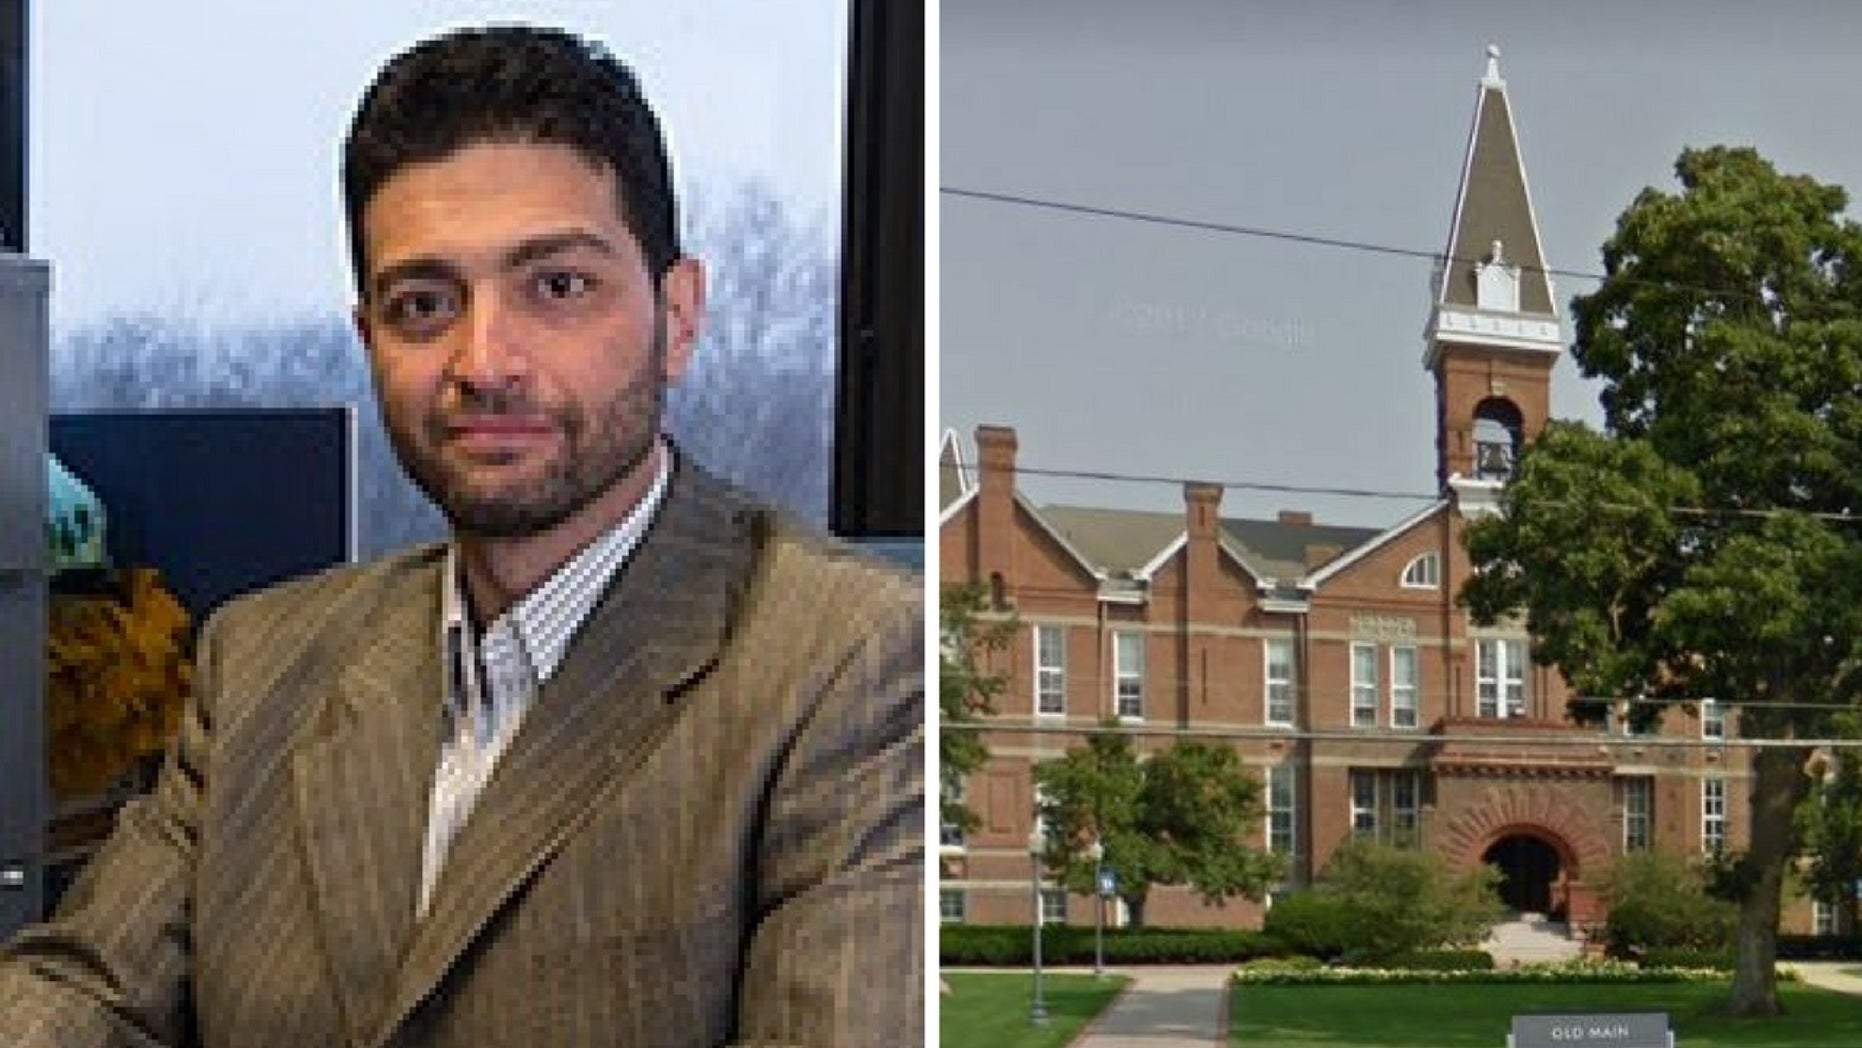 Mahmoud Hamad, an associate professor at Drake University, was accused of spanking female students.